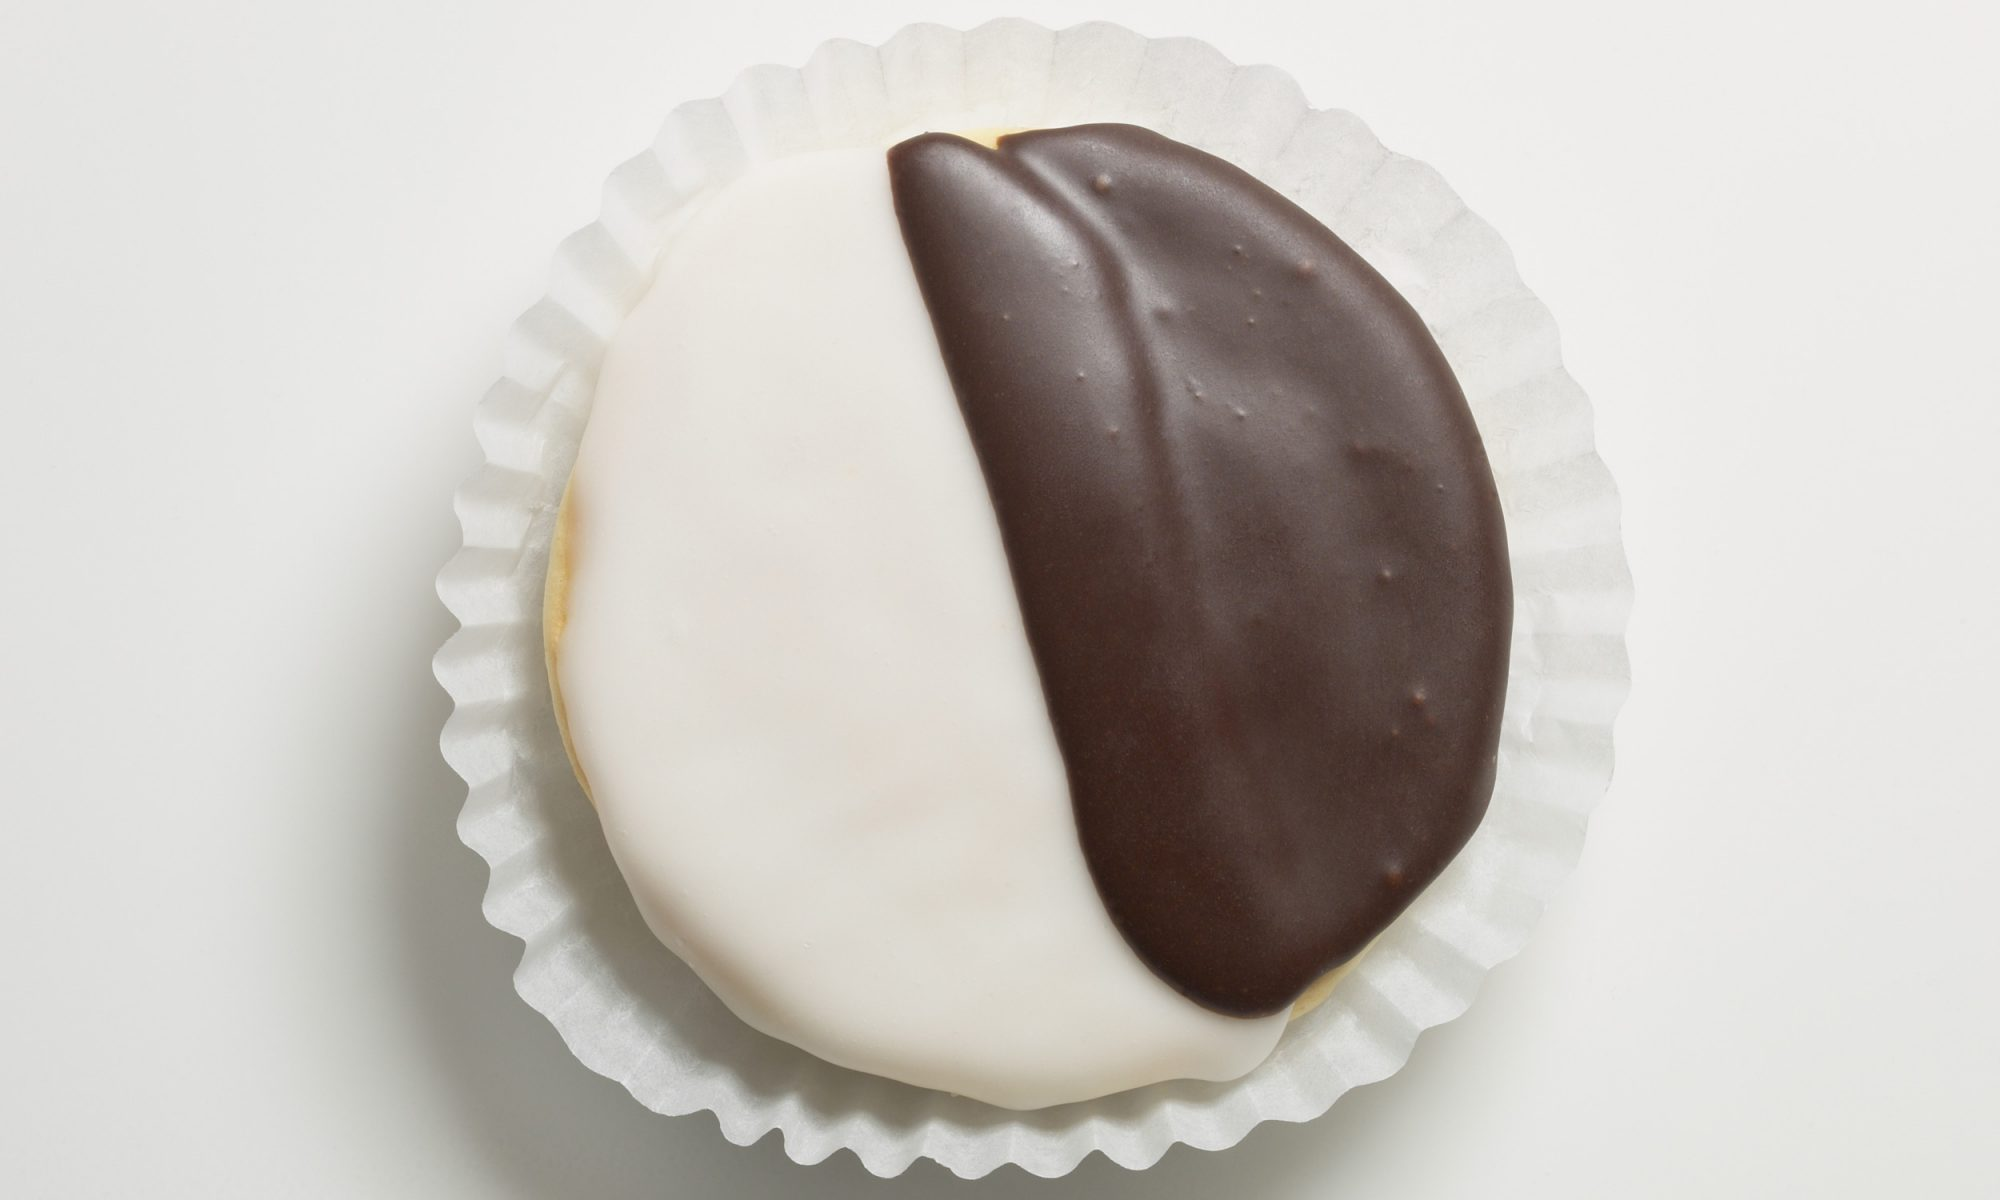 EC: Black and White Cookies Helped Me Find Balance During Chemo